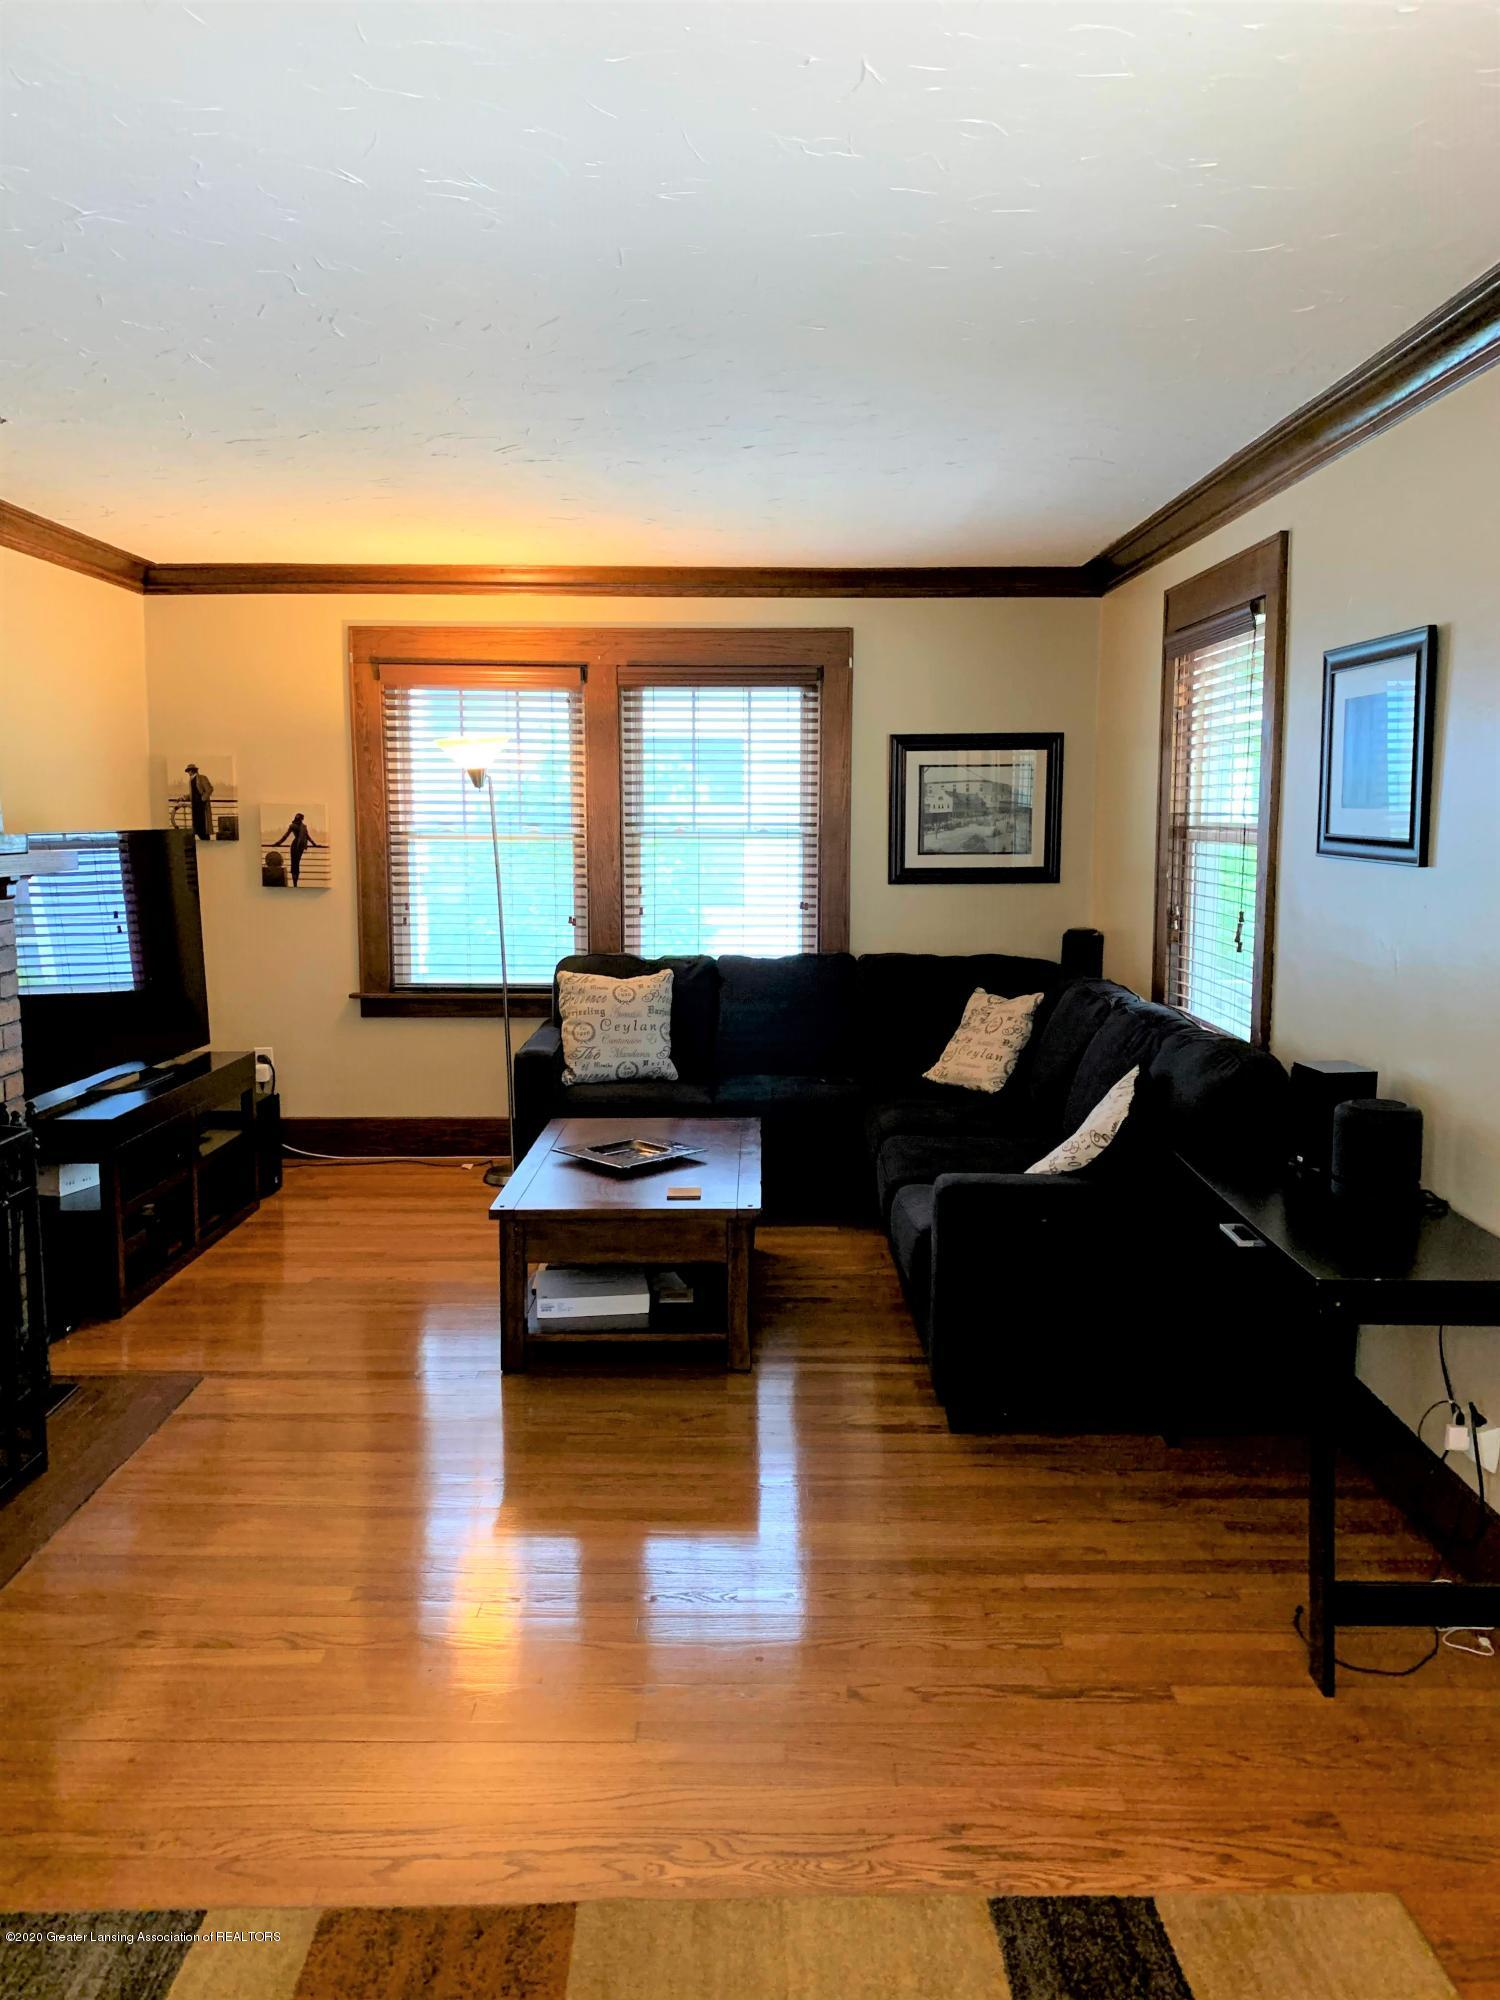 523 N Jenison Ave - Living room - 6